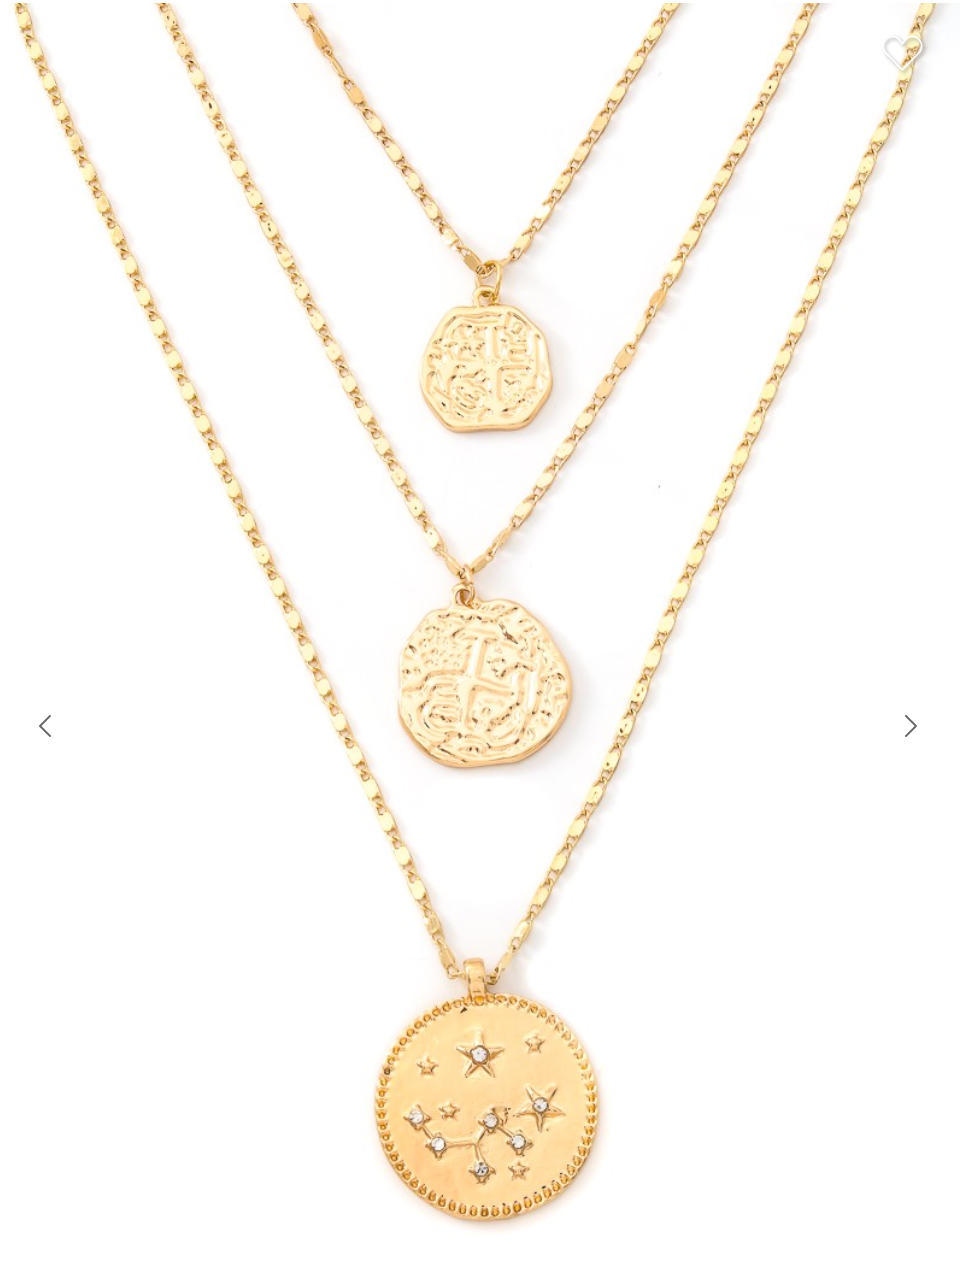 Astral Coin Pendant Necklace